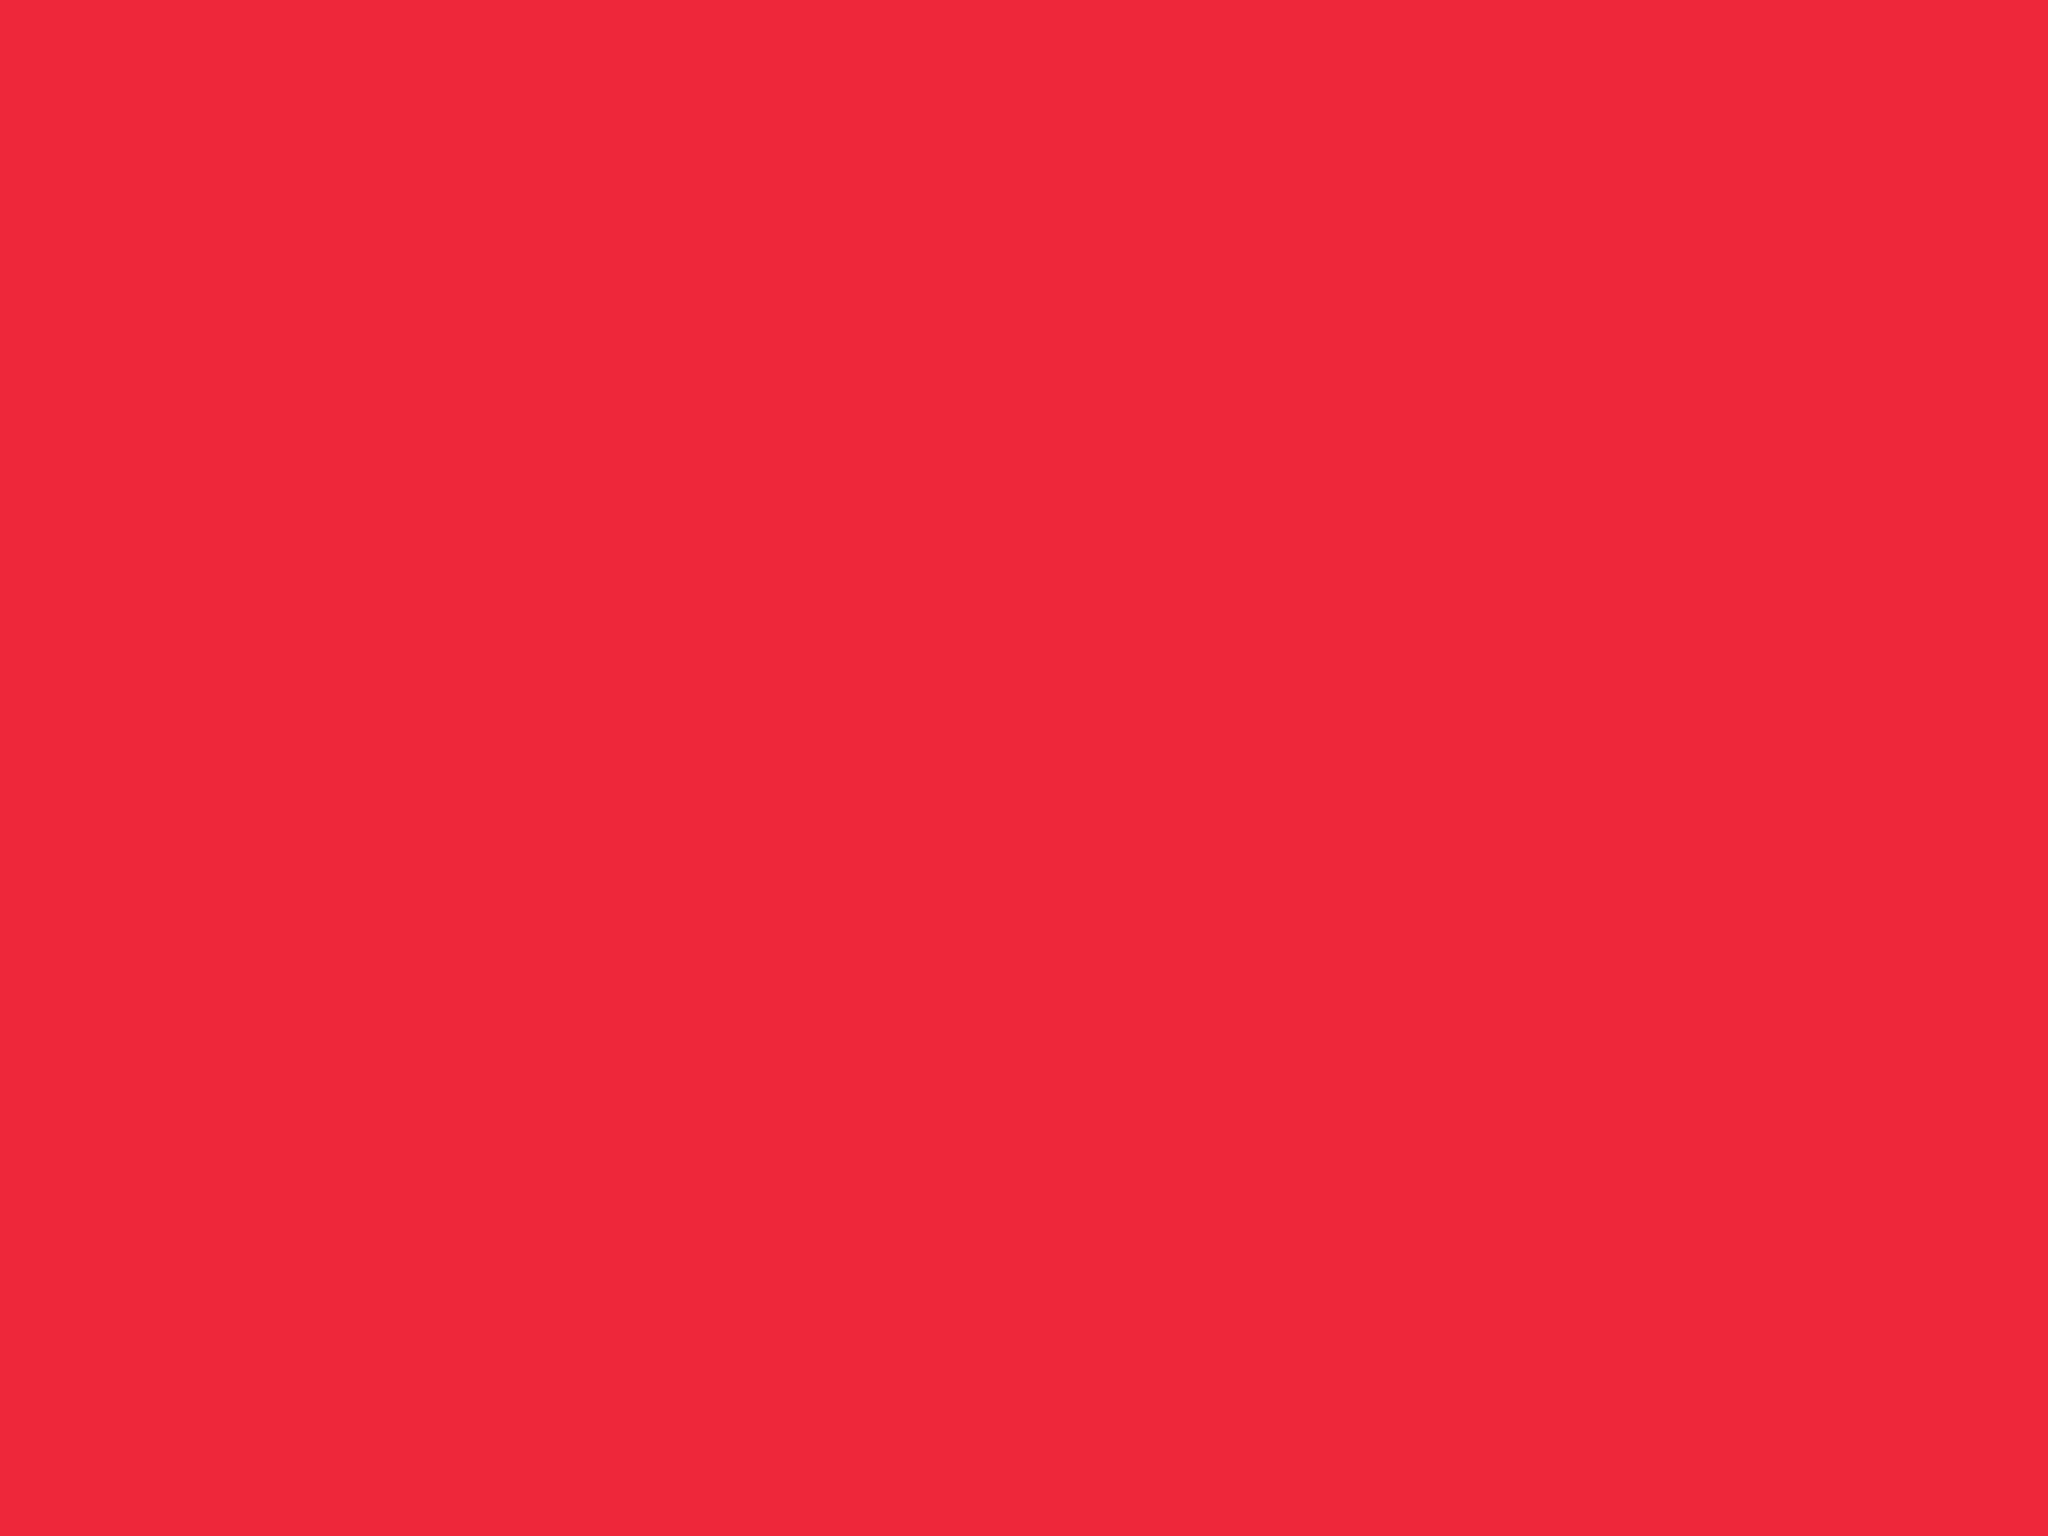 2048x1536 Red Pantone Solid Color Background